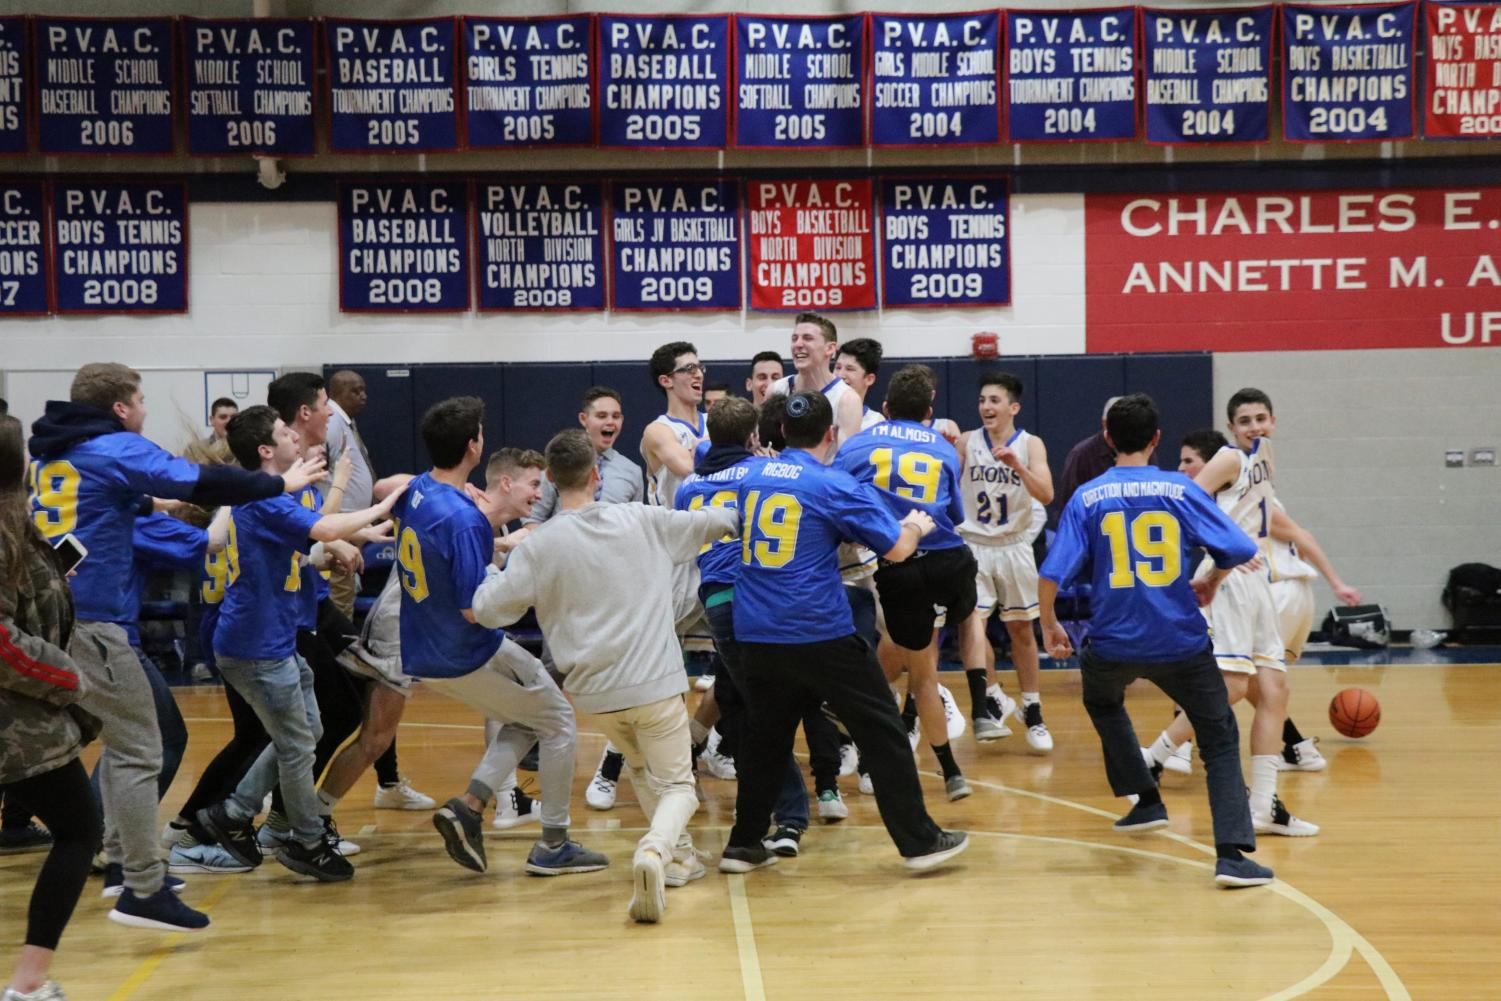 CESJDS students celebrate after a Lions win against rival school Berman Hebrew Academy.